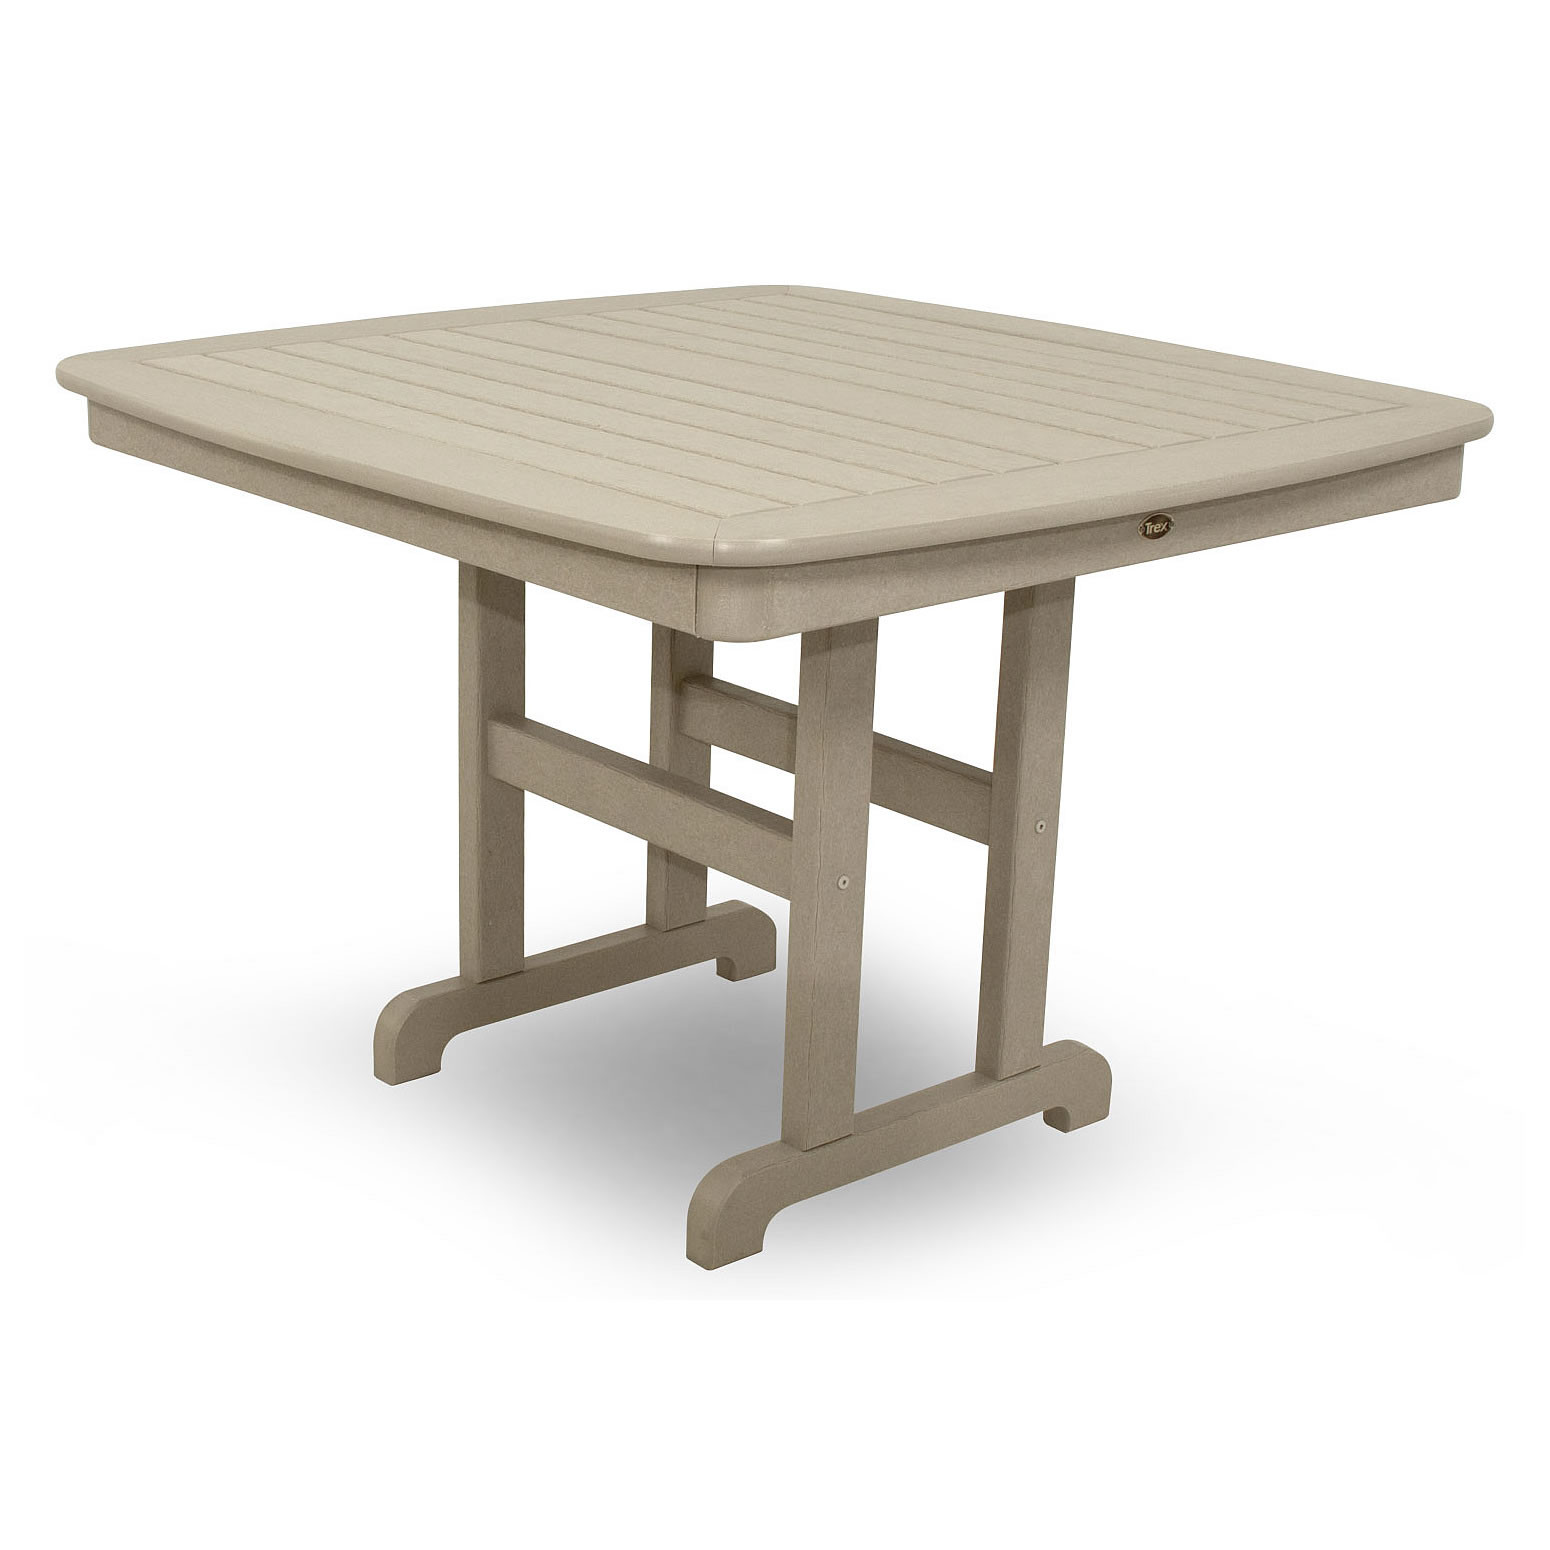 Trex Outdoor Furniture Yacht Club 44 in Dining Table